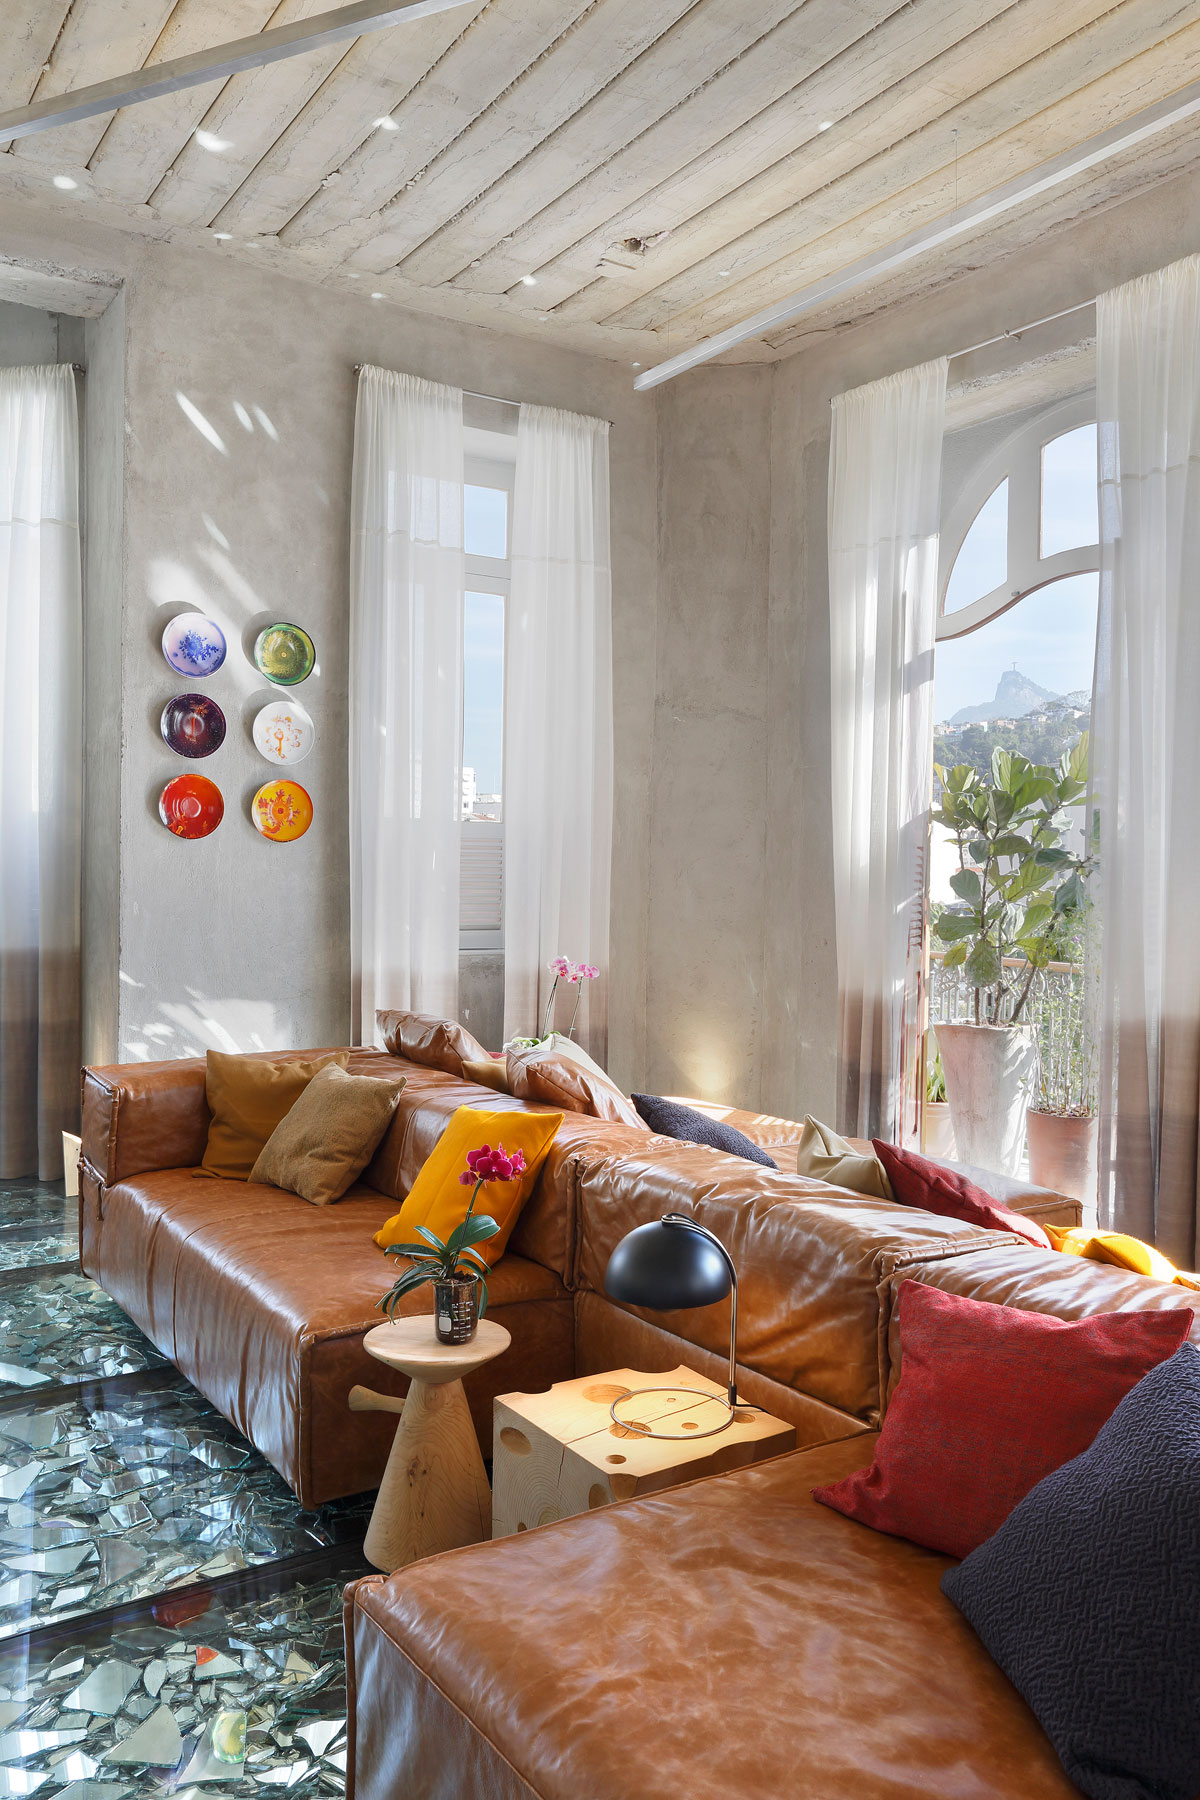 Stylish and Eclectic Design with Broken Glass Floor of Lab LZ for Casa Cor Rio 2015 by Giselle Taranto Architecture-08